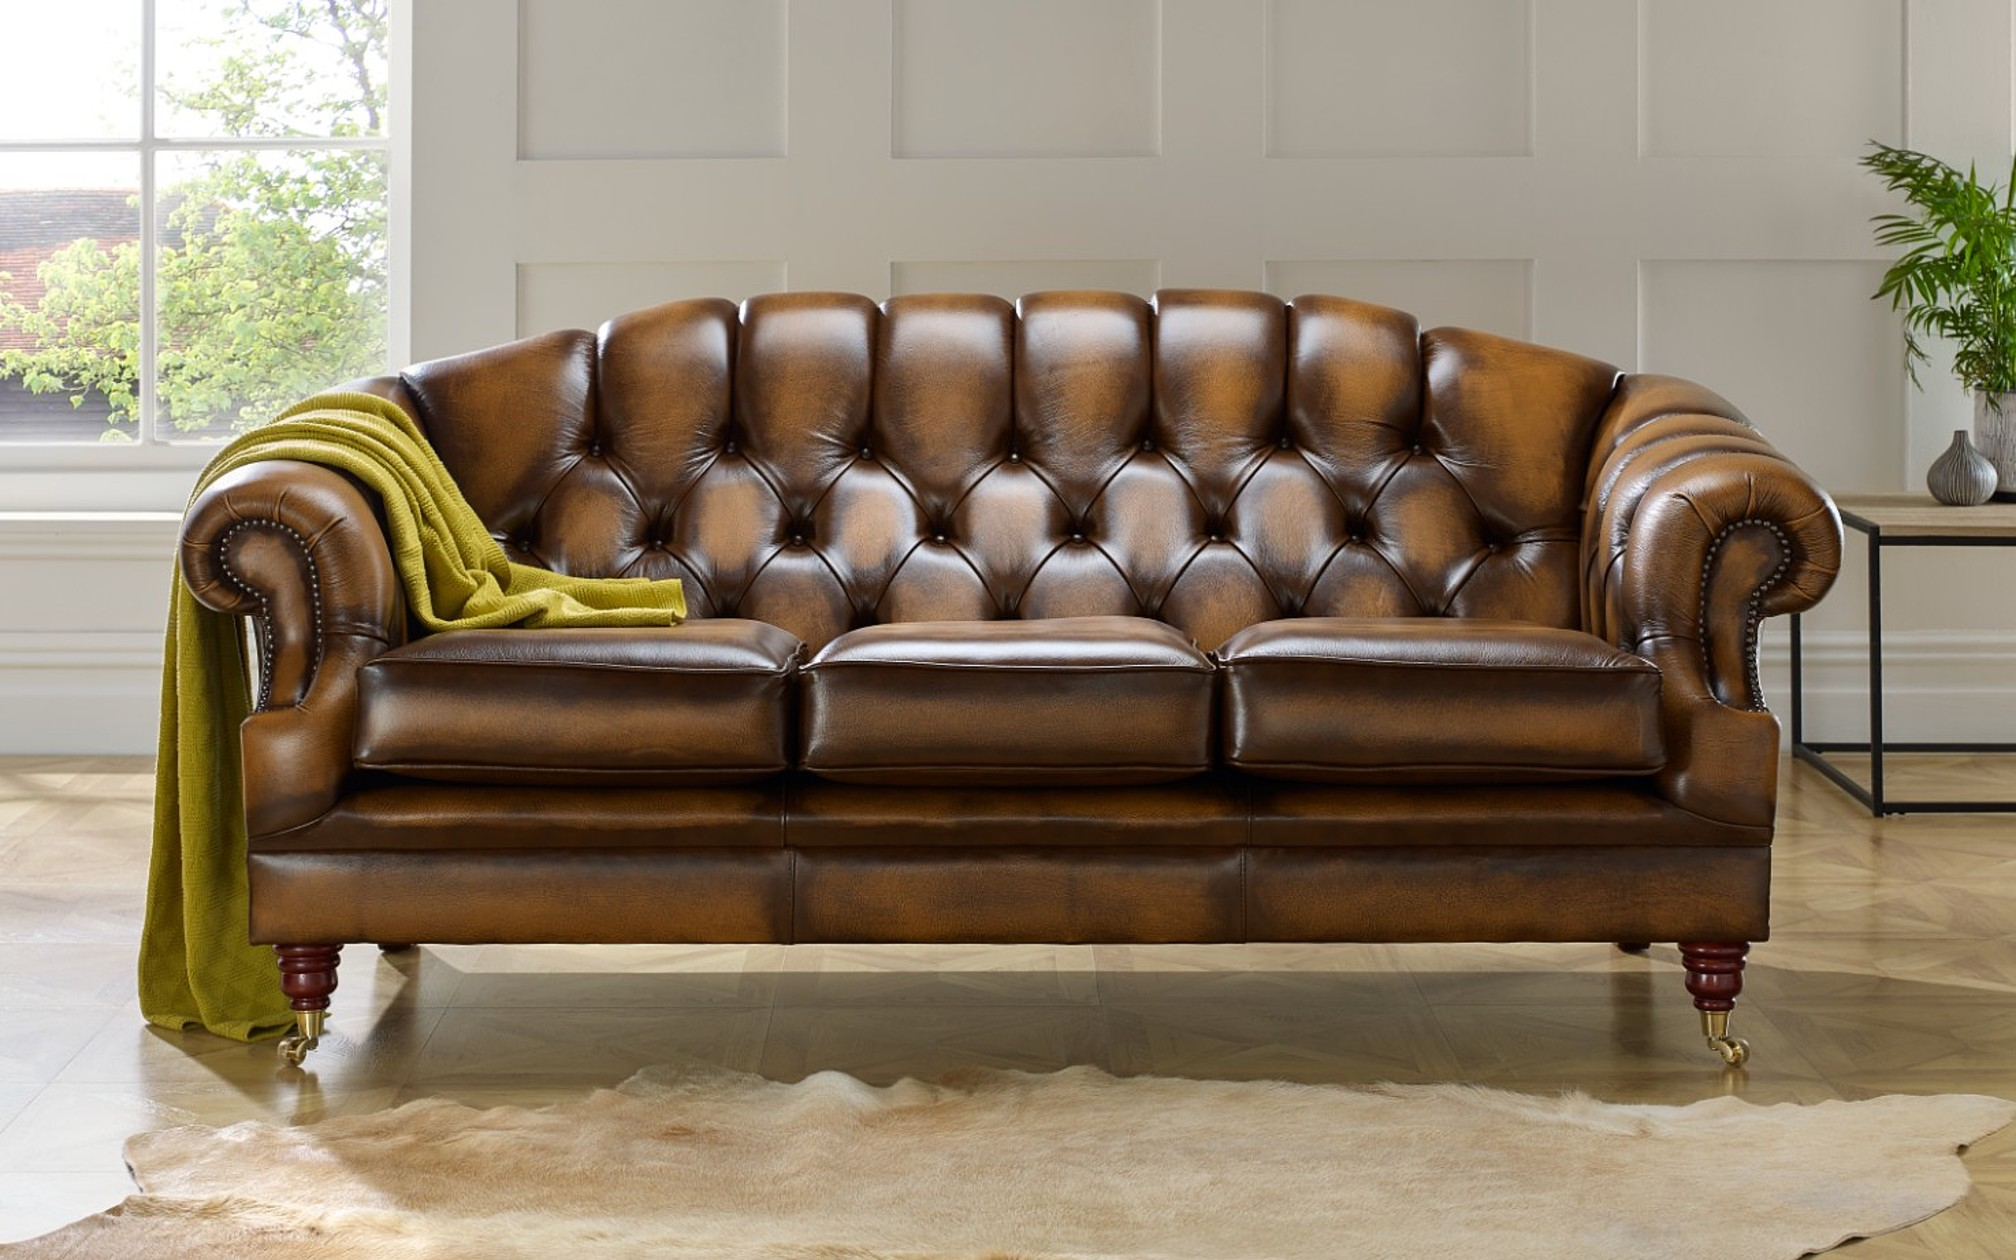 Chesterfield Sofa Brown Leather The Victoria Chesterfield Sofa